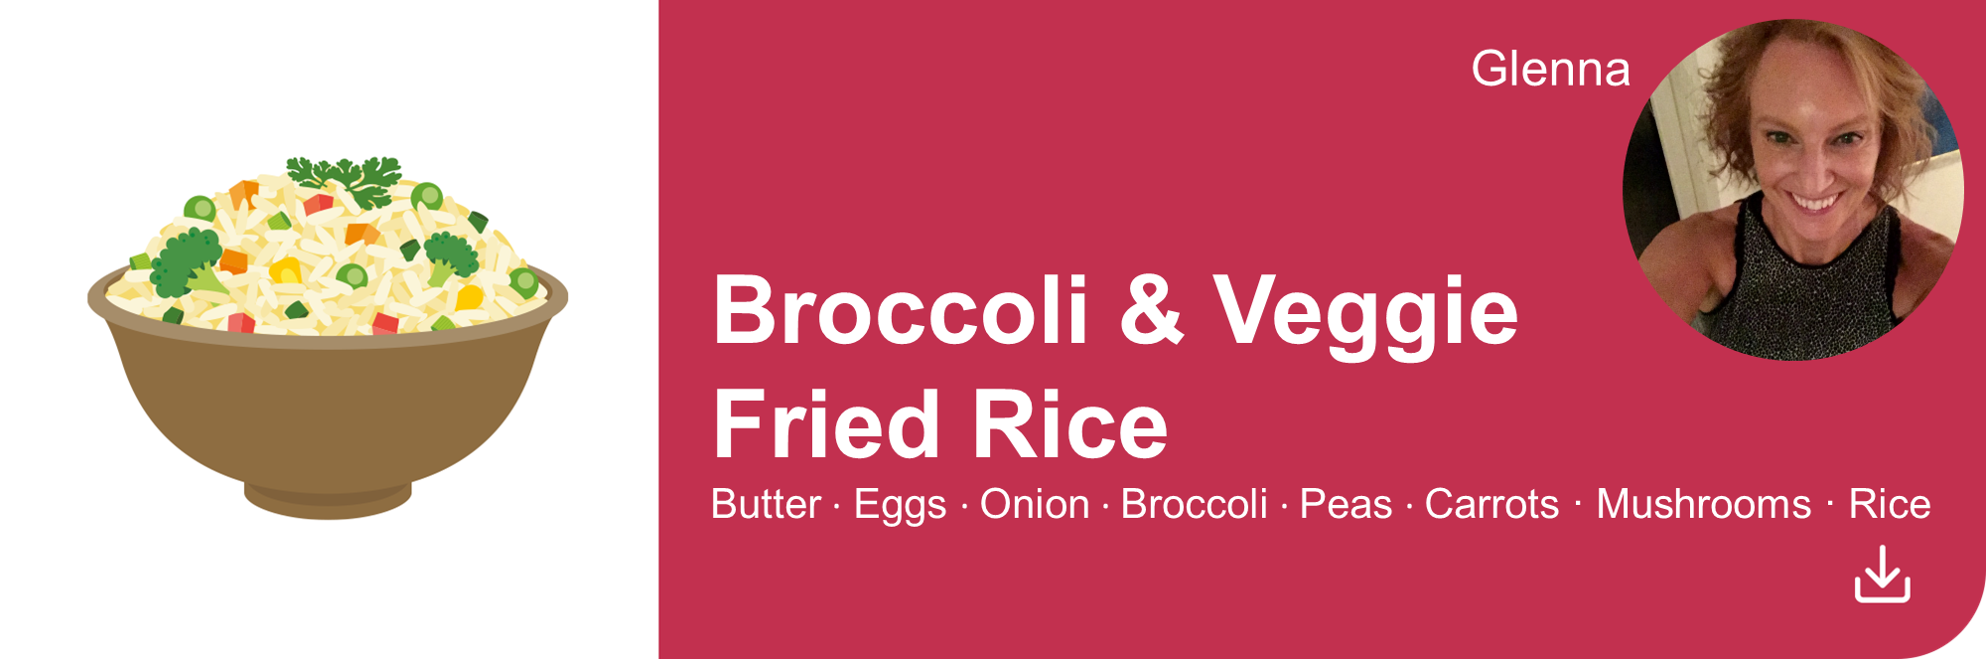 Creative Marketing Concepts_QuarantineAndChill_Comfort Food Edition_Broccoli and Veggie Fried Rice_Glenna new